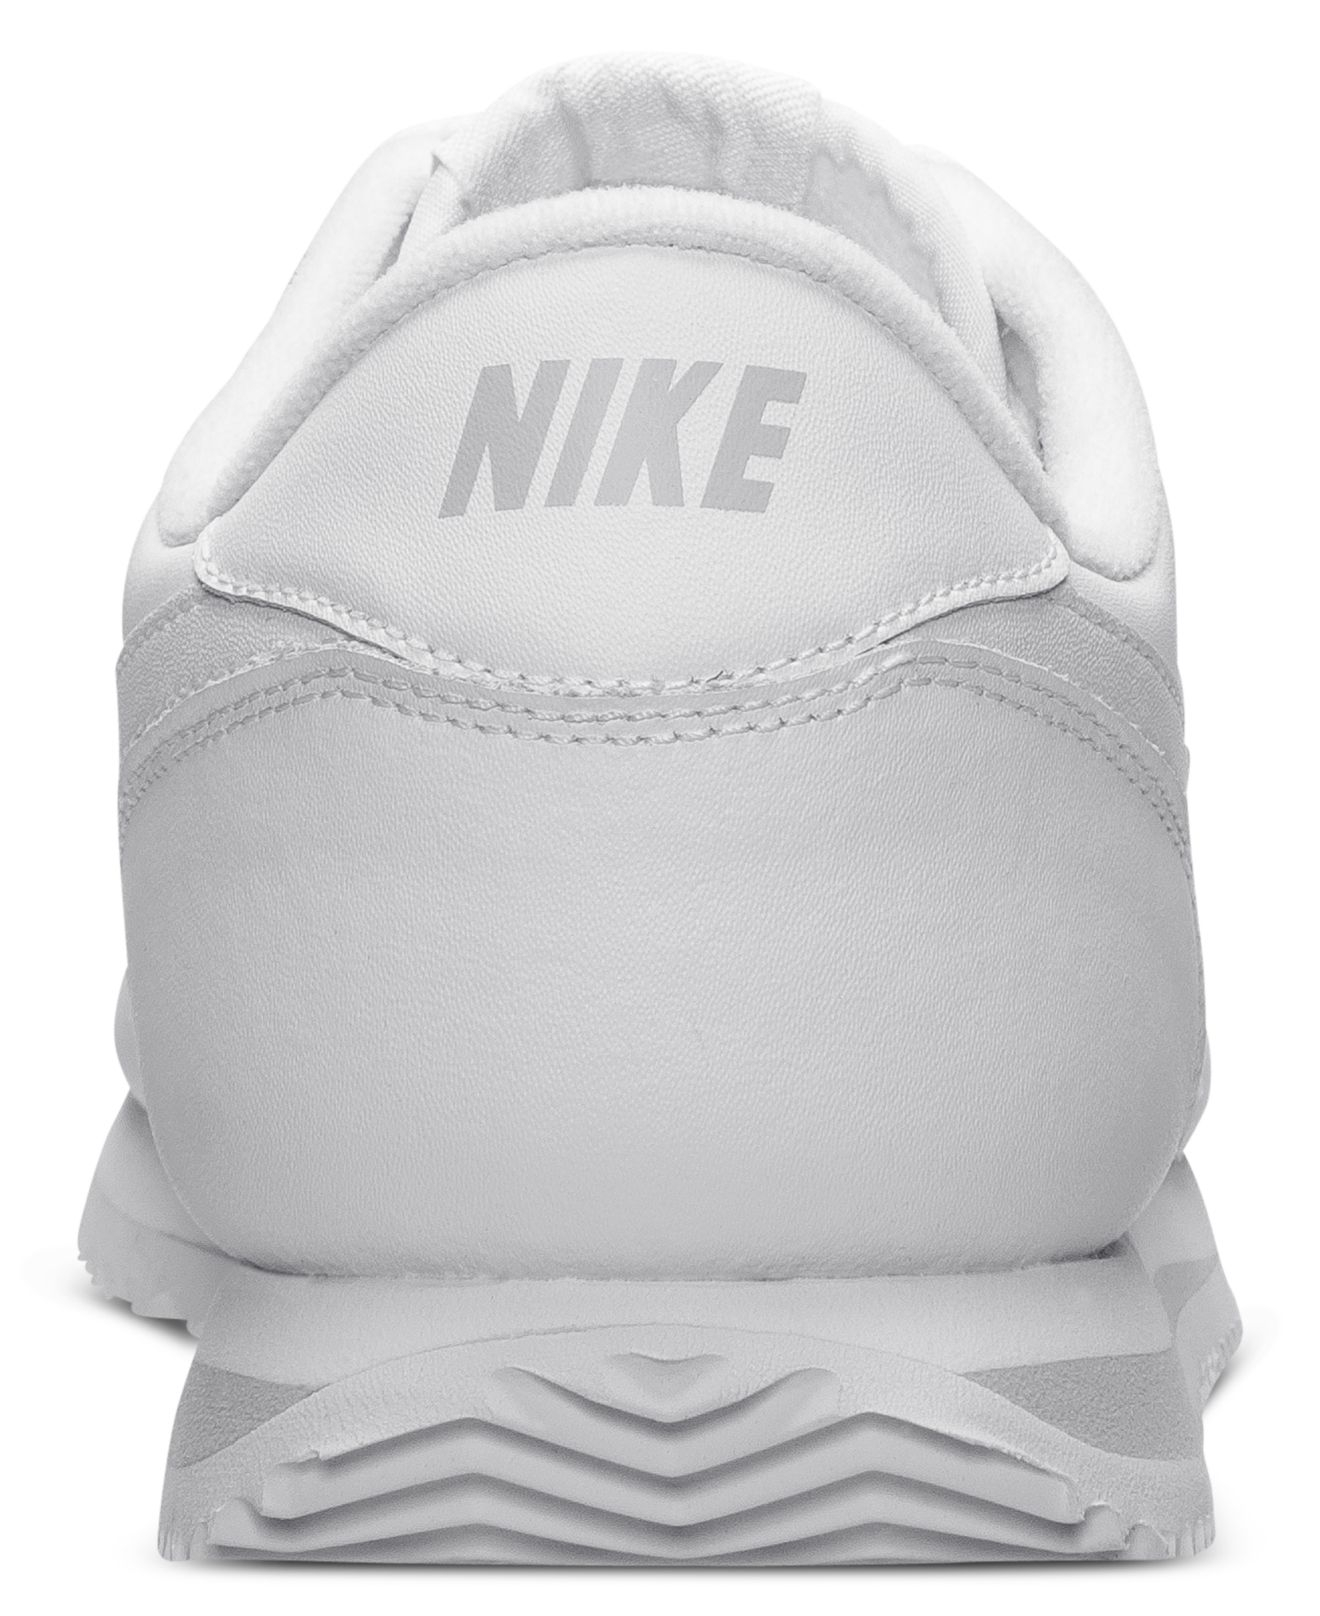 check out 16547 48bb8 Nike White Men's Cortez Basic Leather Casual Sneakers From Finish Line for  men